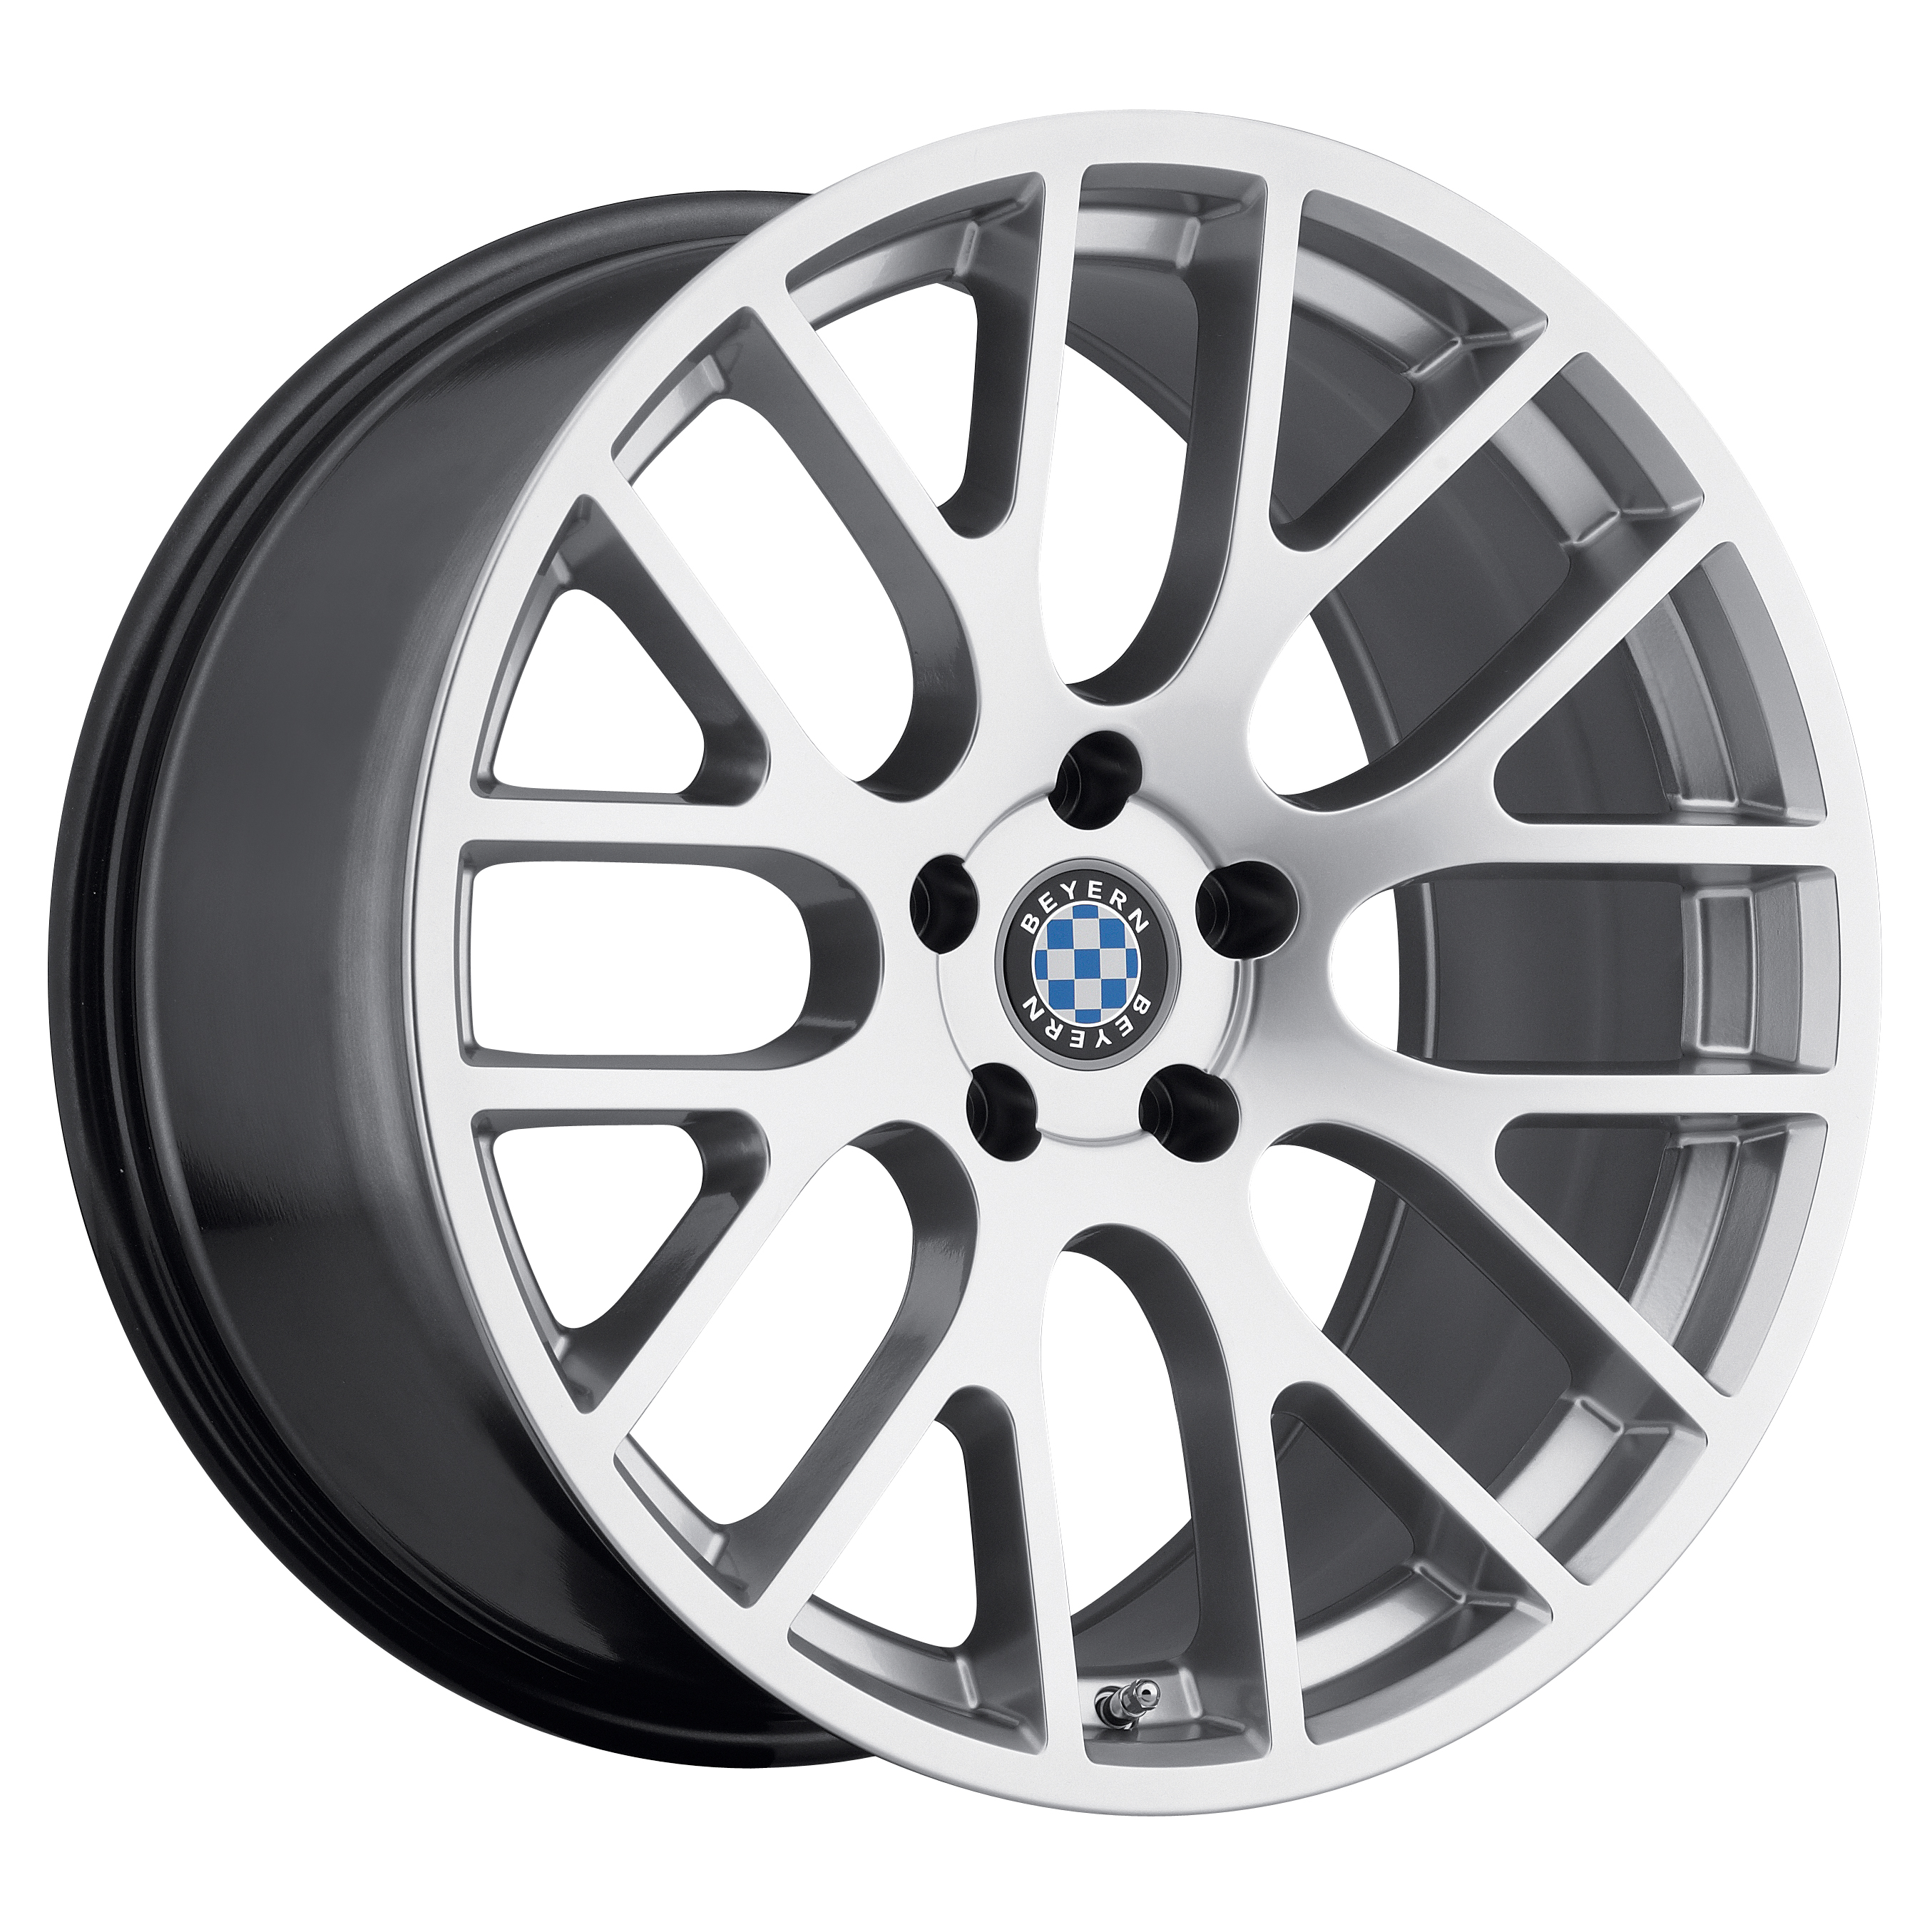 Beyern Wheels Steps Up With Five Custom Bmw Wheels For Bmw S Newly Introduced 4 Series Coupes